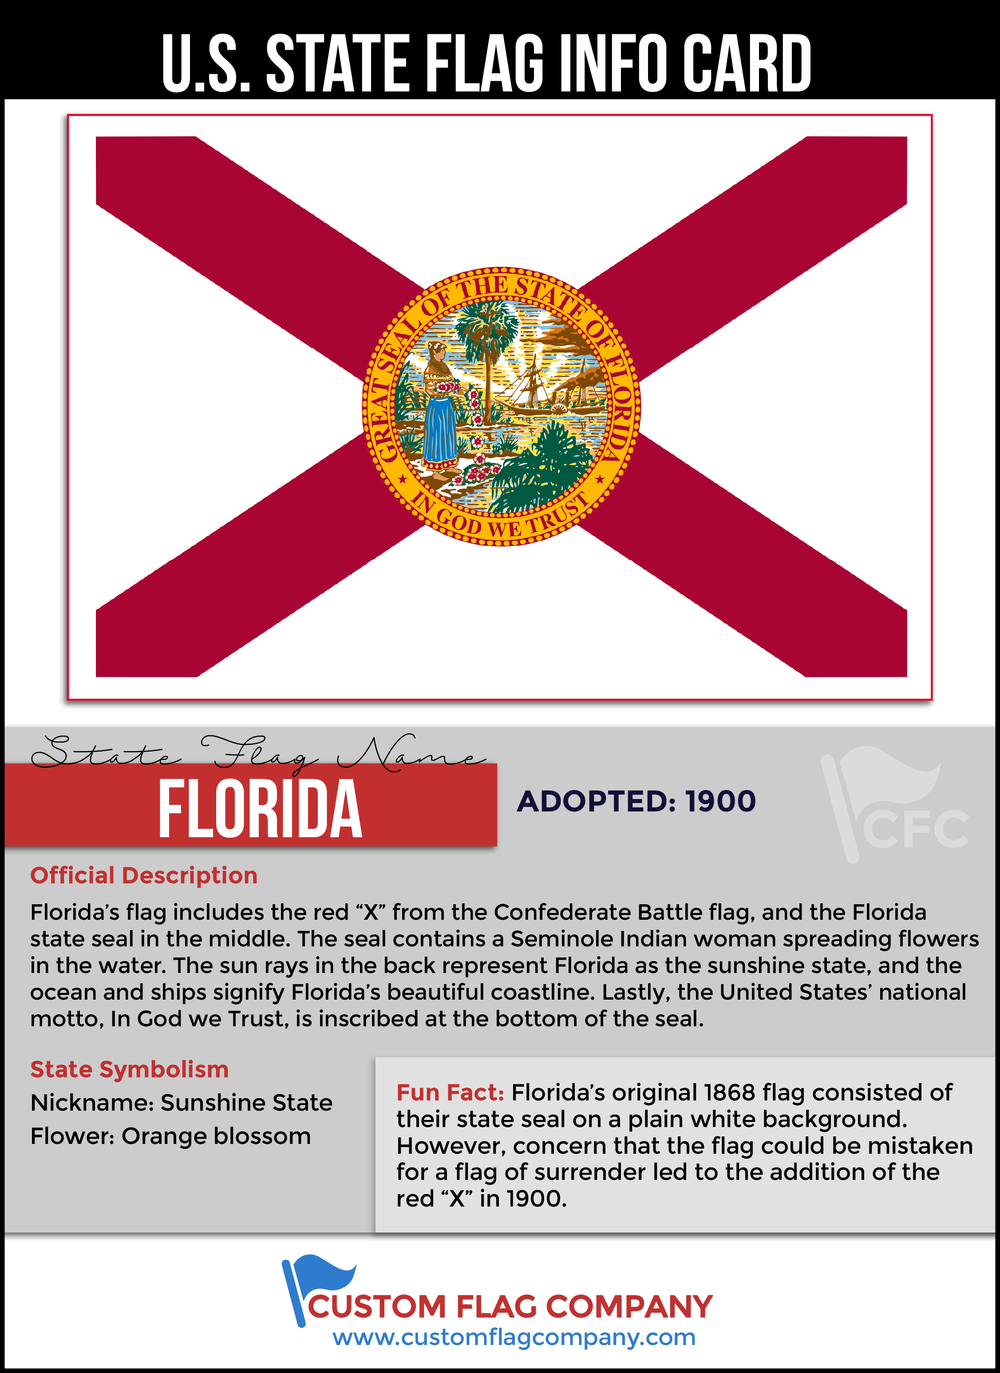 Florida state flag custom flag company request a quote mightylinksfo